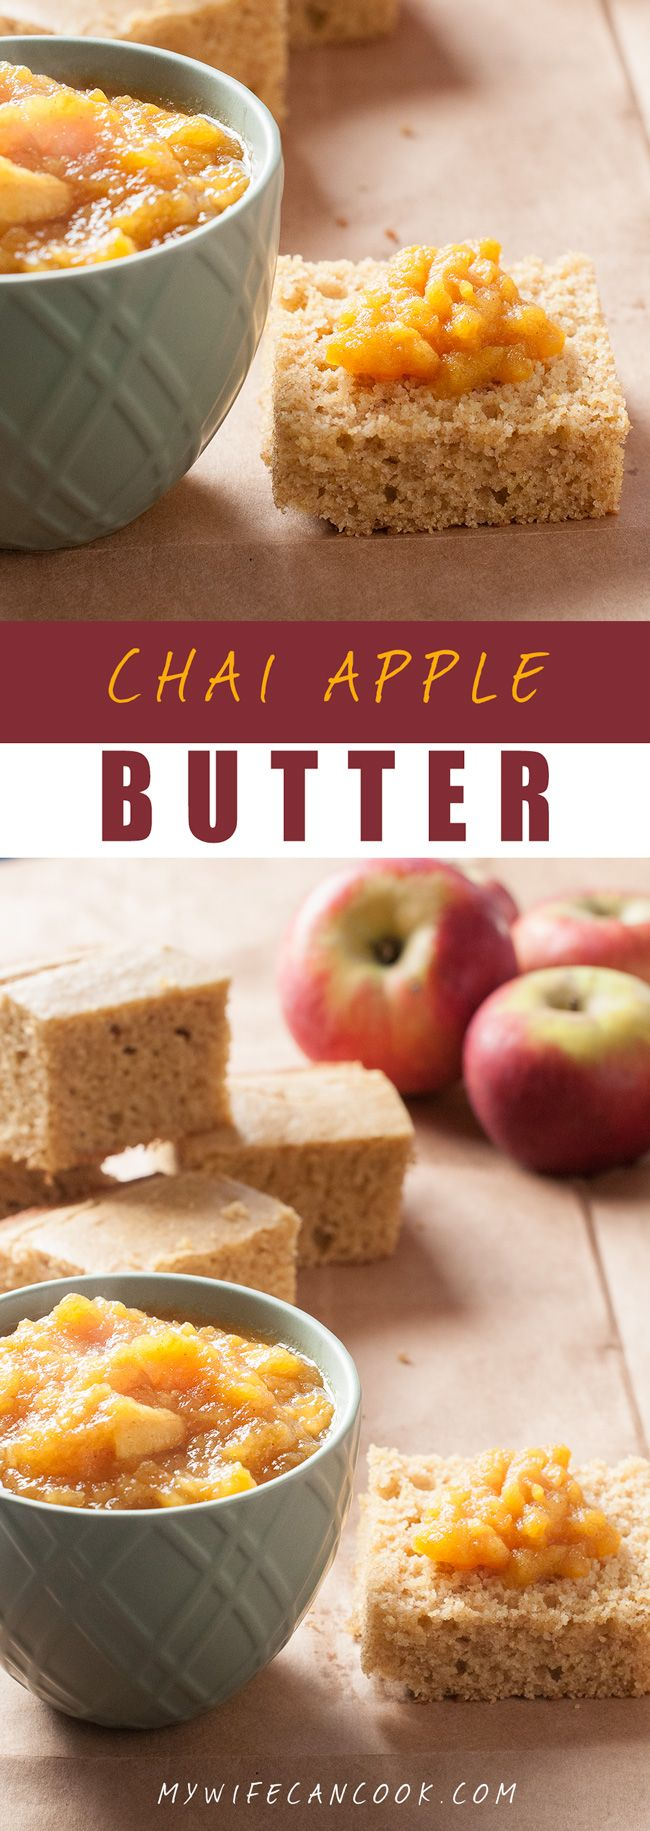 This Chai Apple Butter has become a popular sweet condiment in our house. We love it on homemade cornbread, but it will work on just about any bread or pastry on which you would like a little added sweetness.  It's an amazing sweet apple spread for your morning bread or muffin.  Another thing we love is that this freezes or cans so well and so it can be enjoyed throughout the year. As our own little added twist on traditional apple butter recipes we have added in the Chai flavor. Try it!